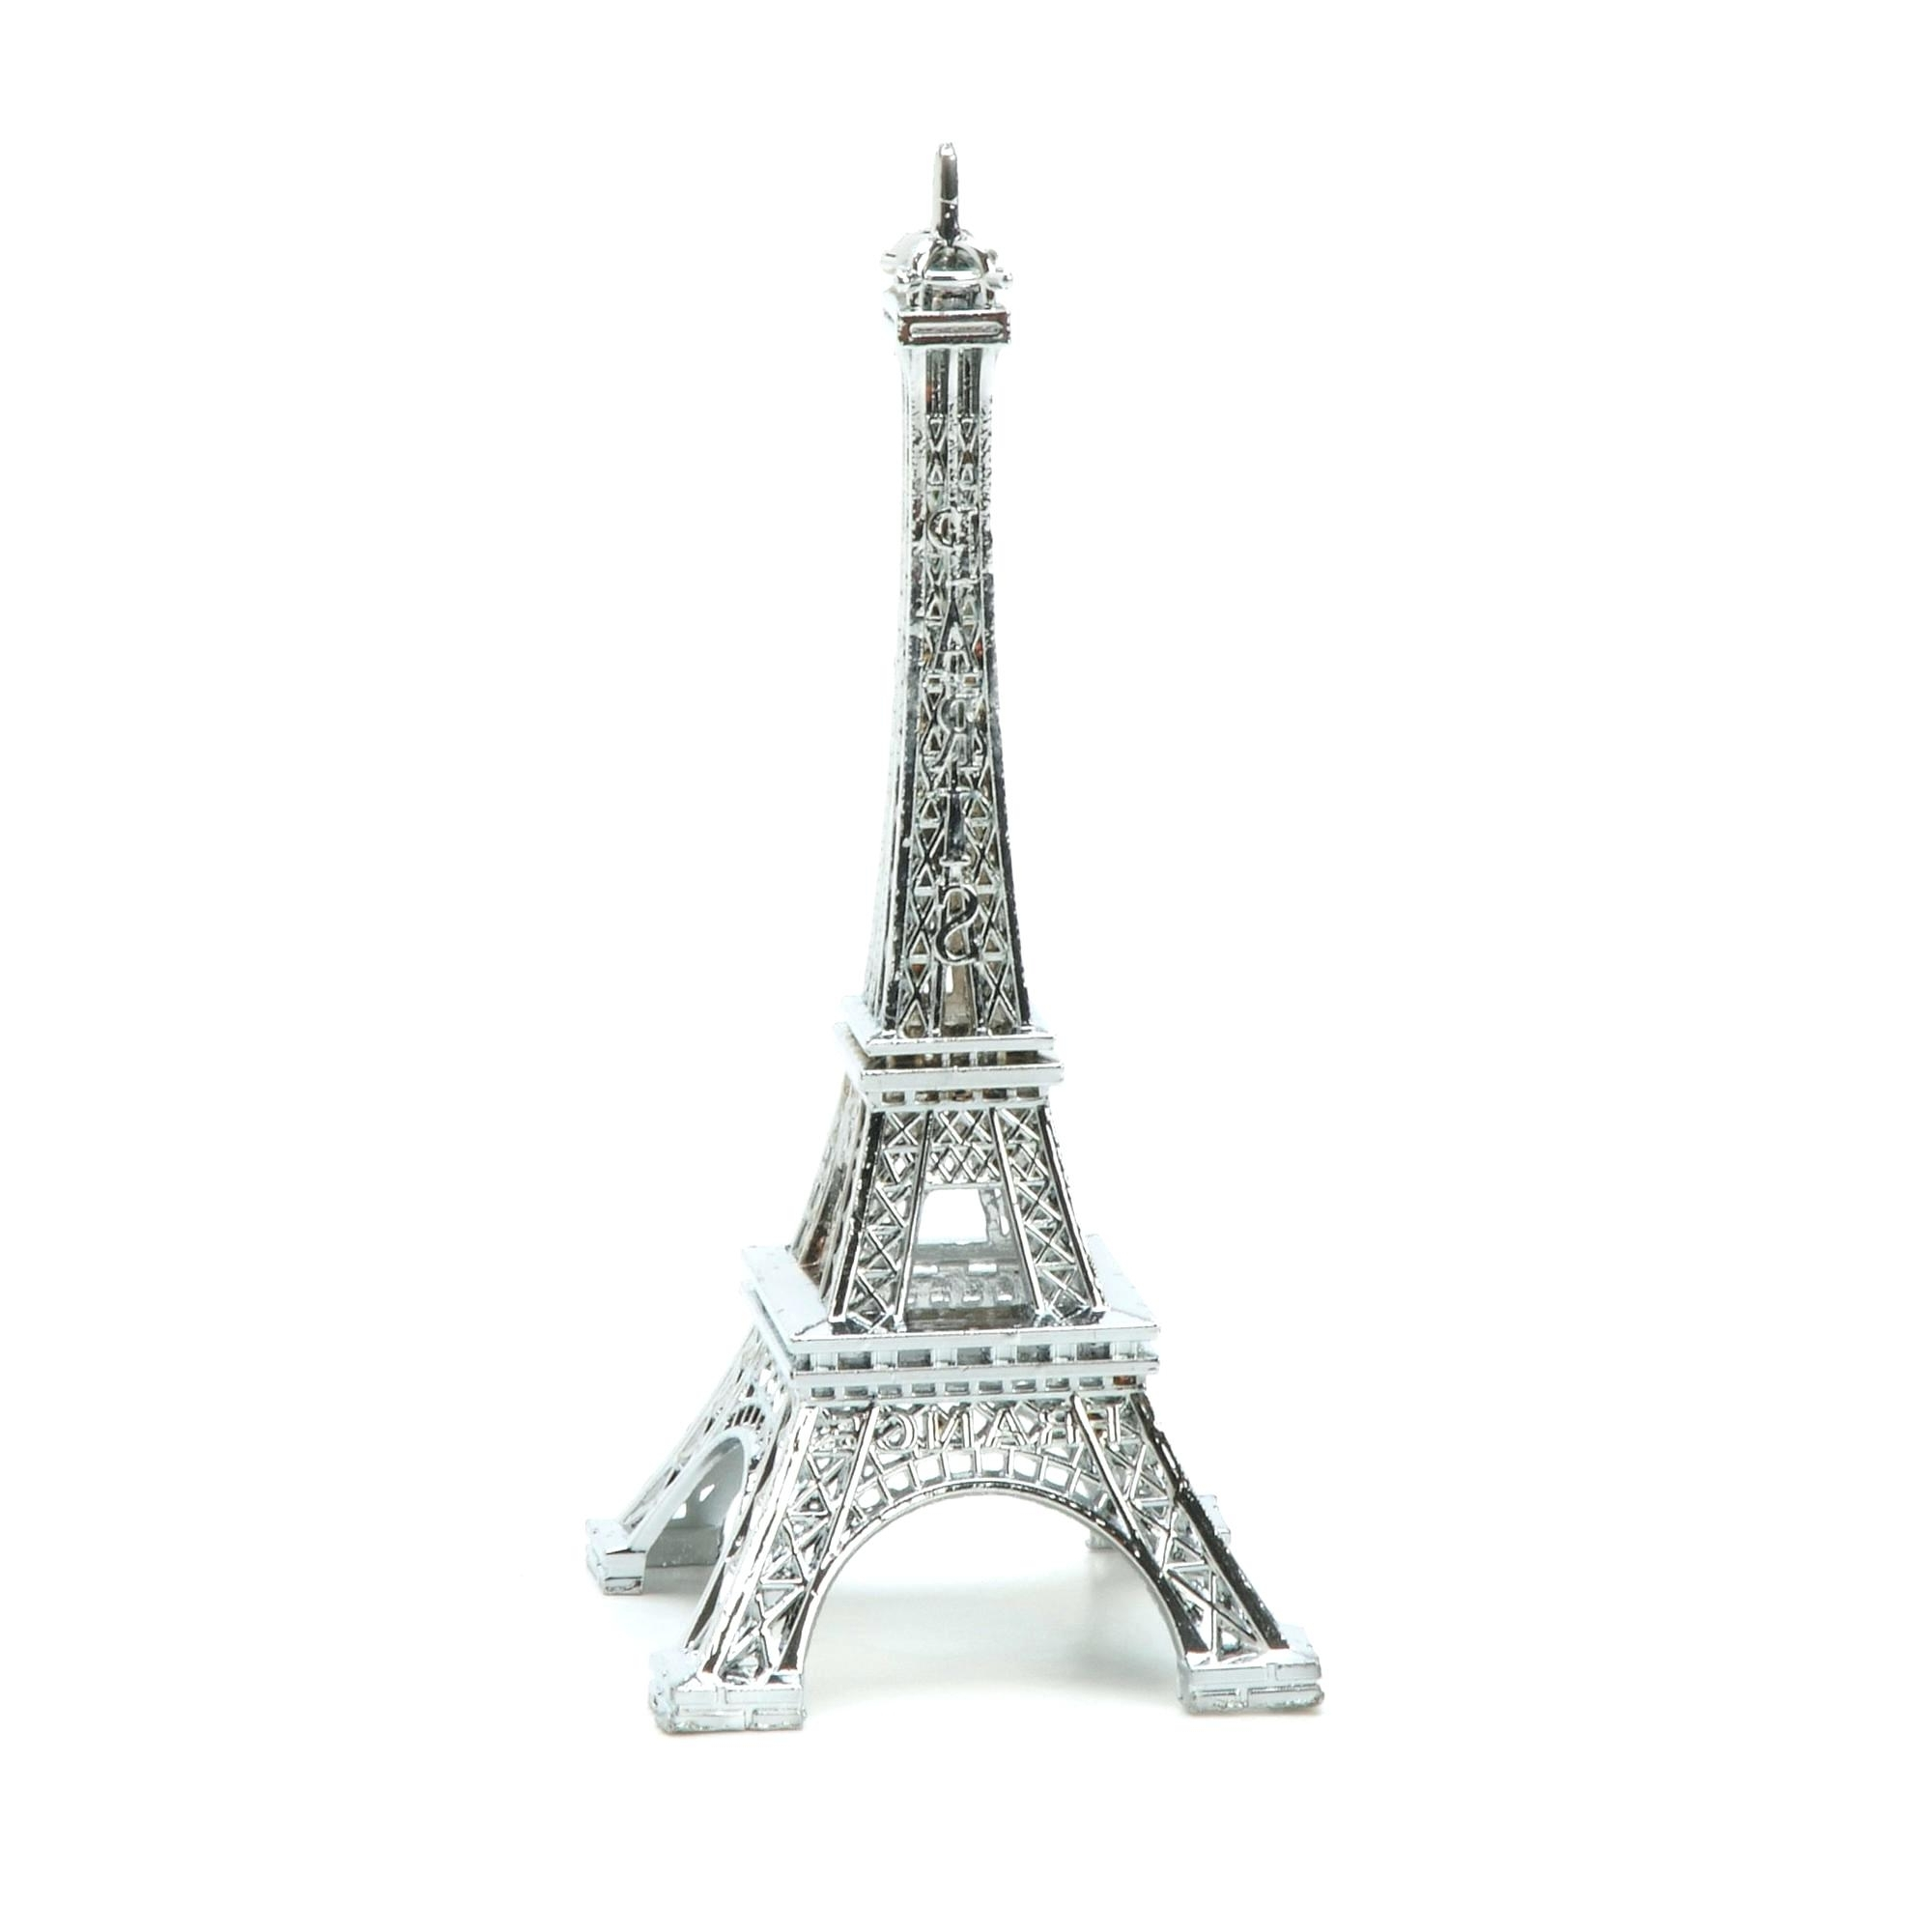 Eiffel Tower Metal Wall Decor Sculpture • Walls Decor With Regard To Preferred Metal Eiffel Tower Wall Art (View 5 of 15)